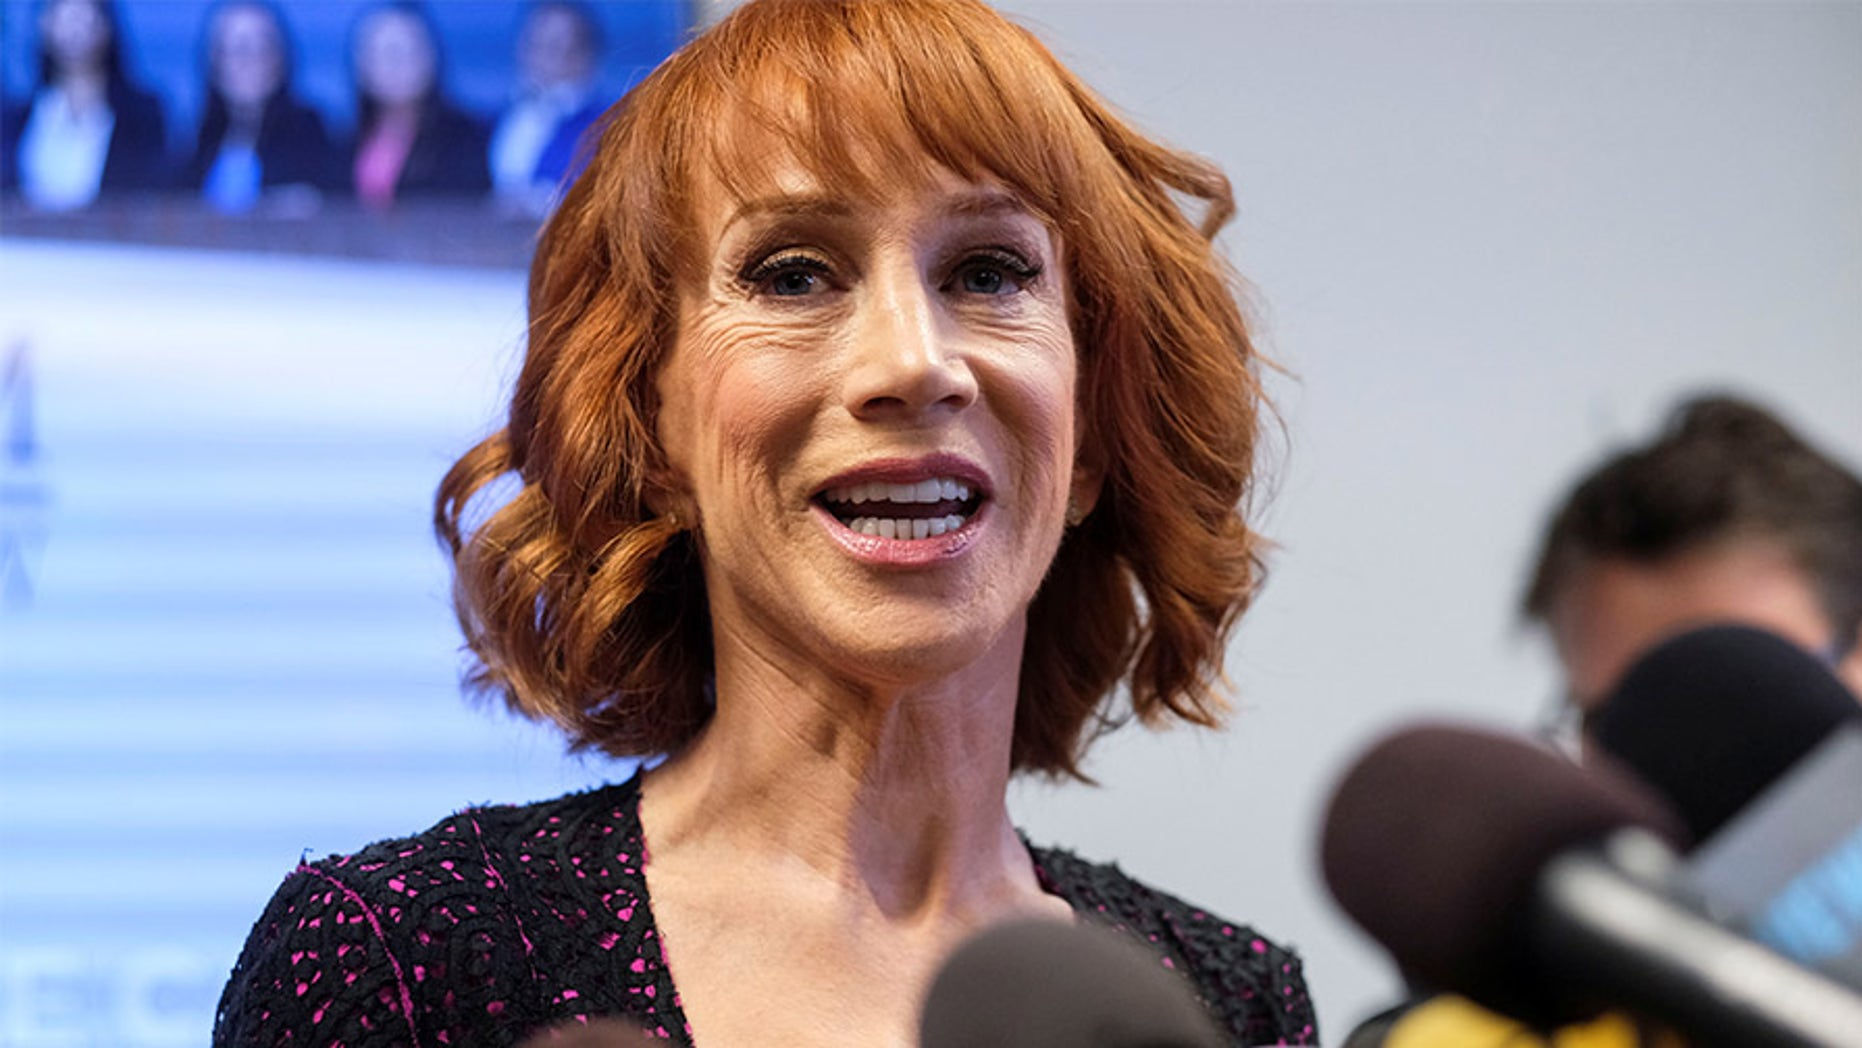 Kathy Griffin reflected on her bloody Trump photo controversy from a year ago on Twitter.